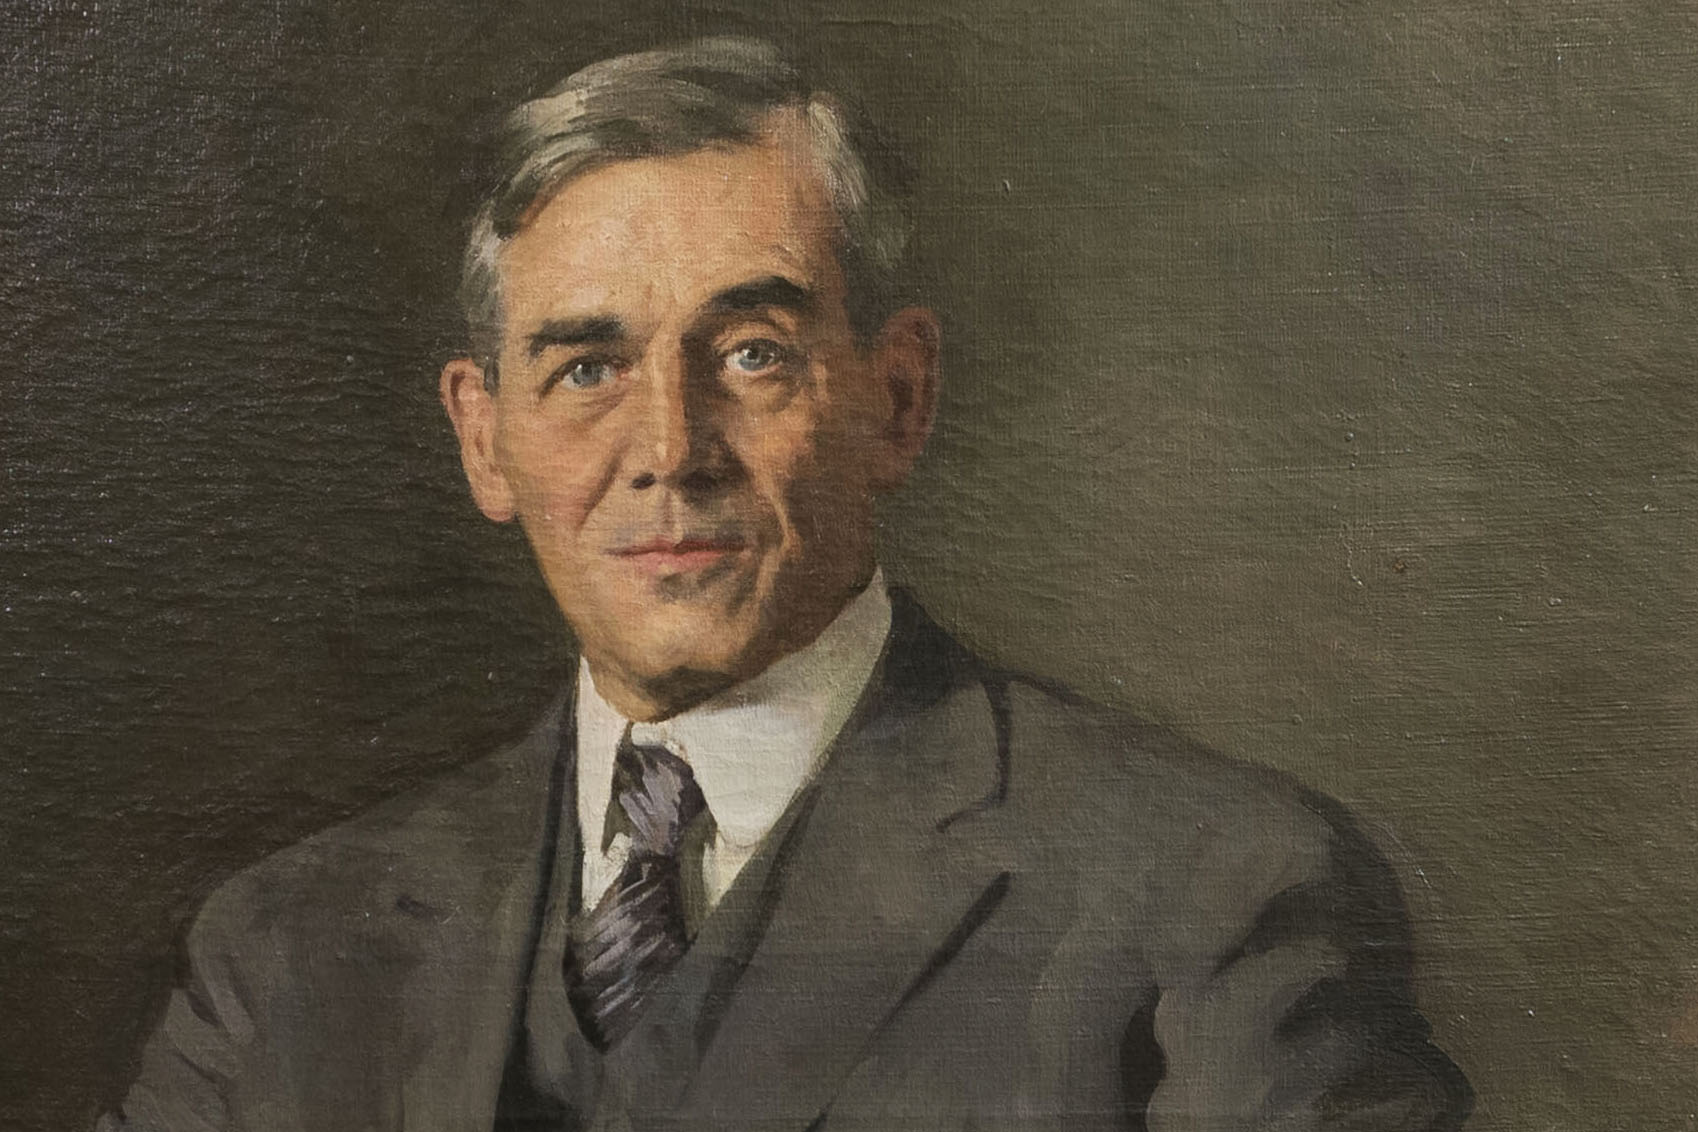 A portrait of Charles Lewis Beach, president of Connecticut Agricultural College from 1908 to 1928, in 1925 by Ellen Emmet Rand. (Sean Flynn/UConn Photo)